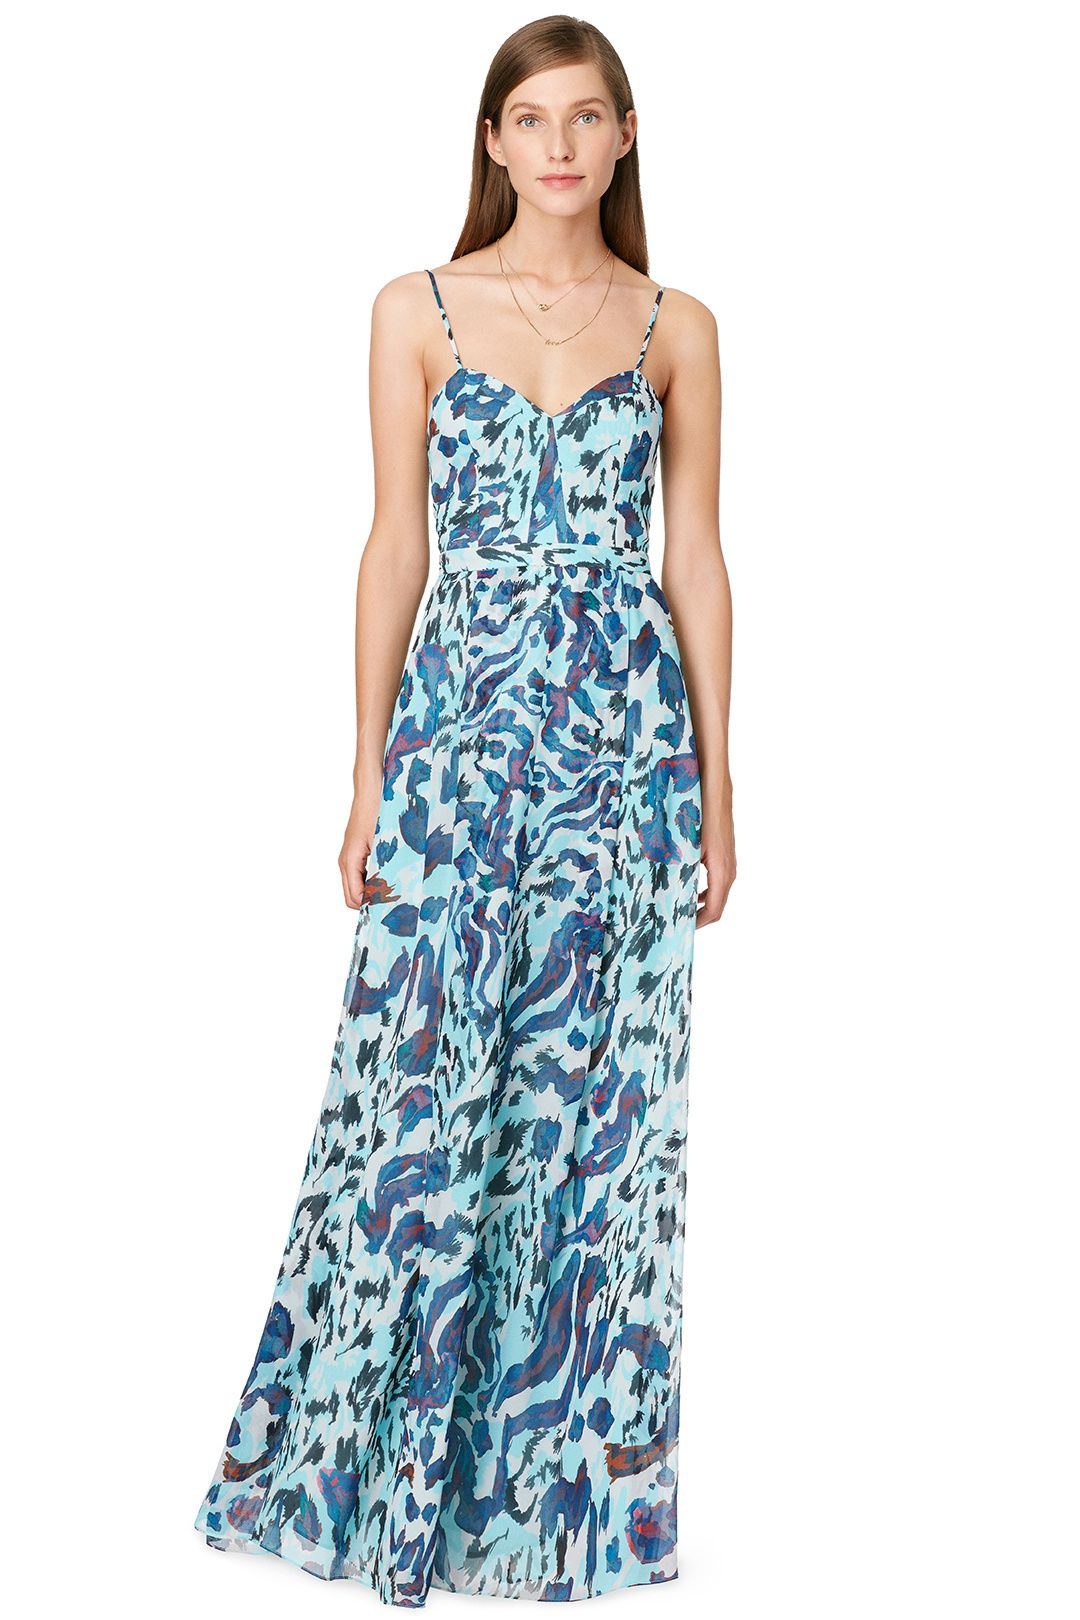 What to Wear to a May Wedding | Camo, Maxi dresses and Wedding guest ...